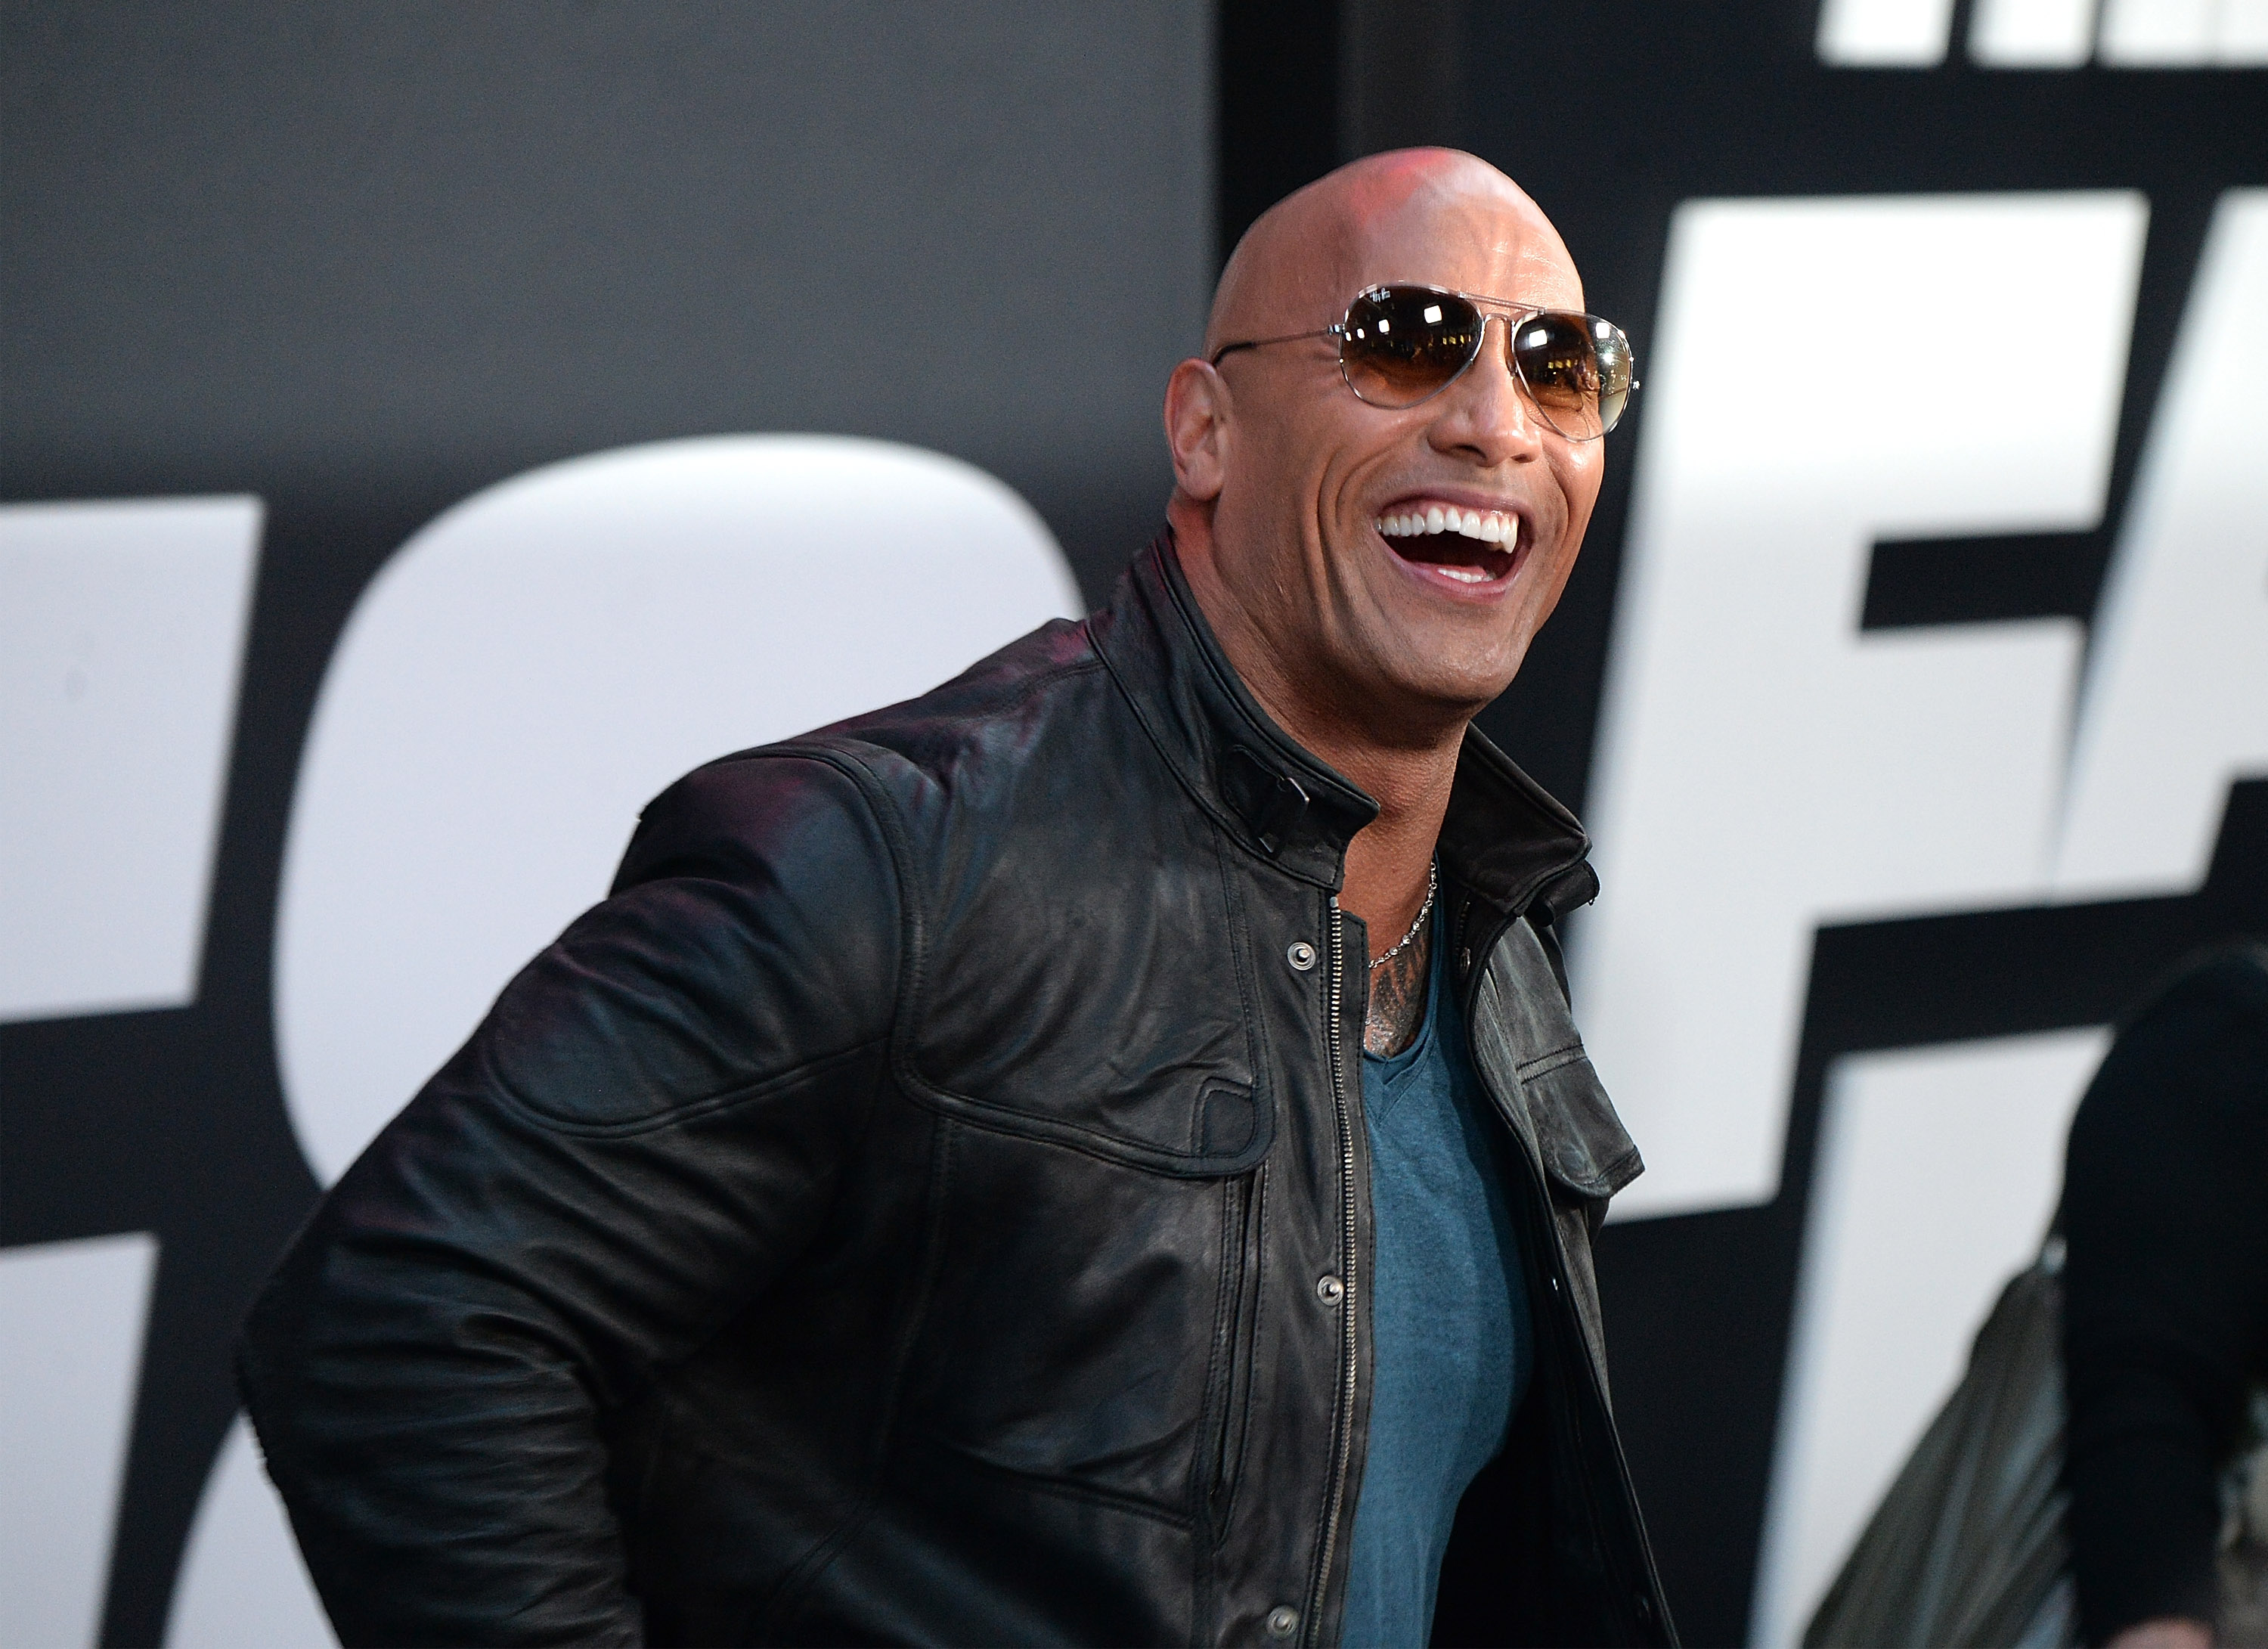 NEW YORK, NY - APRIL 08:  Dwayne Johnson attends  The Fate Of The Furious  New York premiere at Radio City Music Hall on April 8, 2017 in New York City.  (Photo by Kevin Mazur/Getty Images)